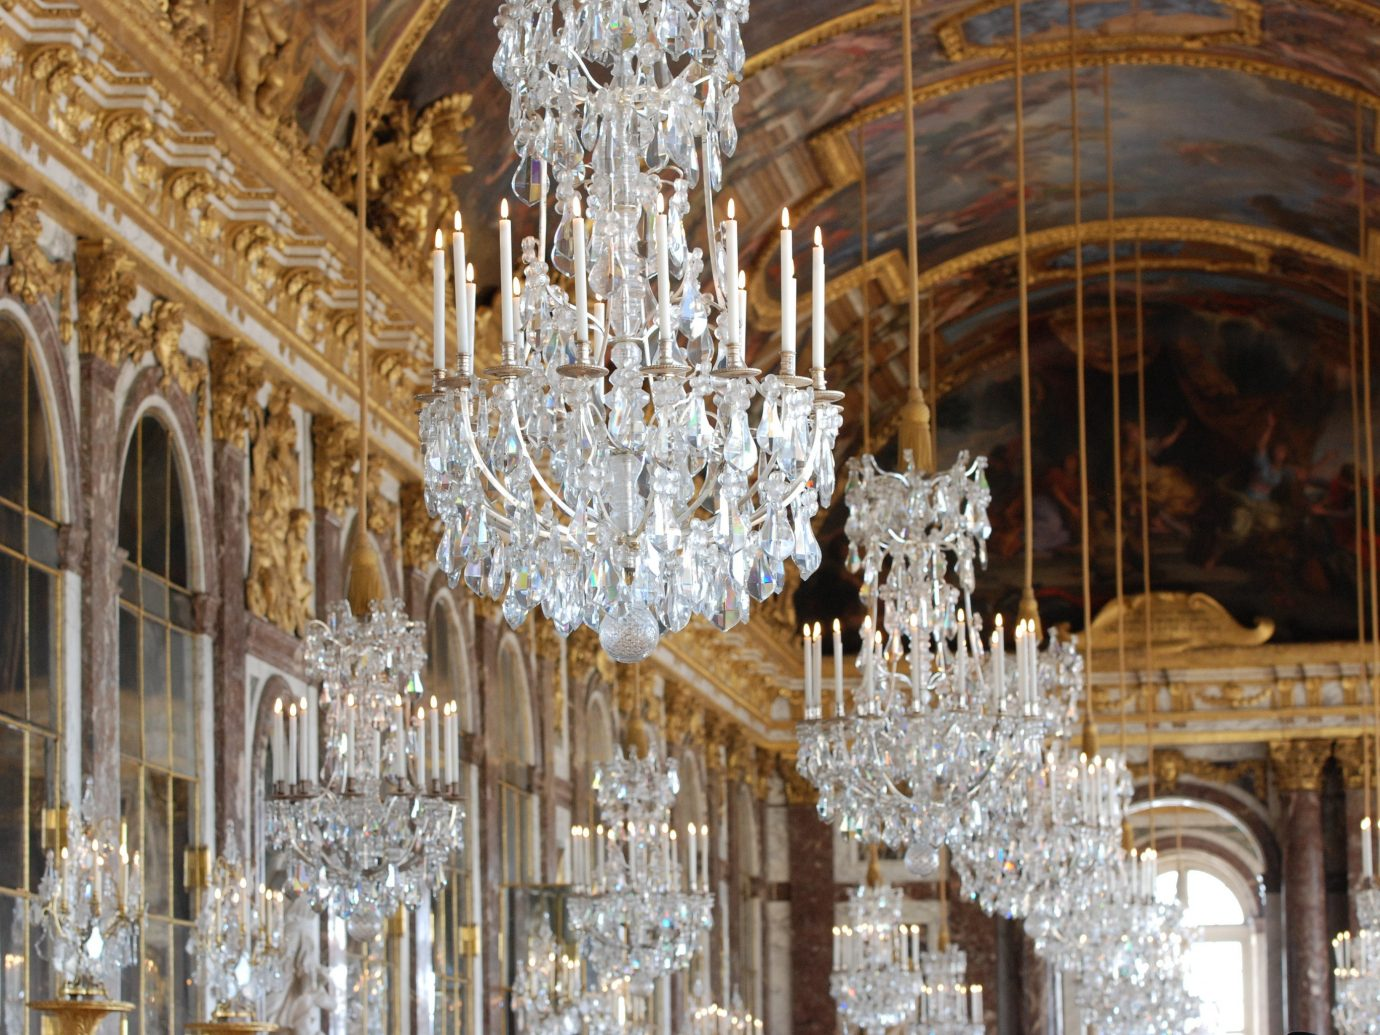 Offbeat indoor building palace chandelier lighting light fixture place of worship cathedral column altar